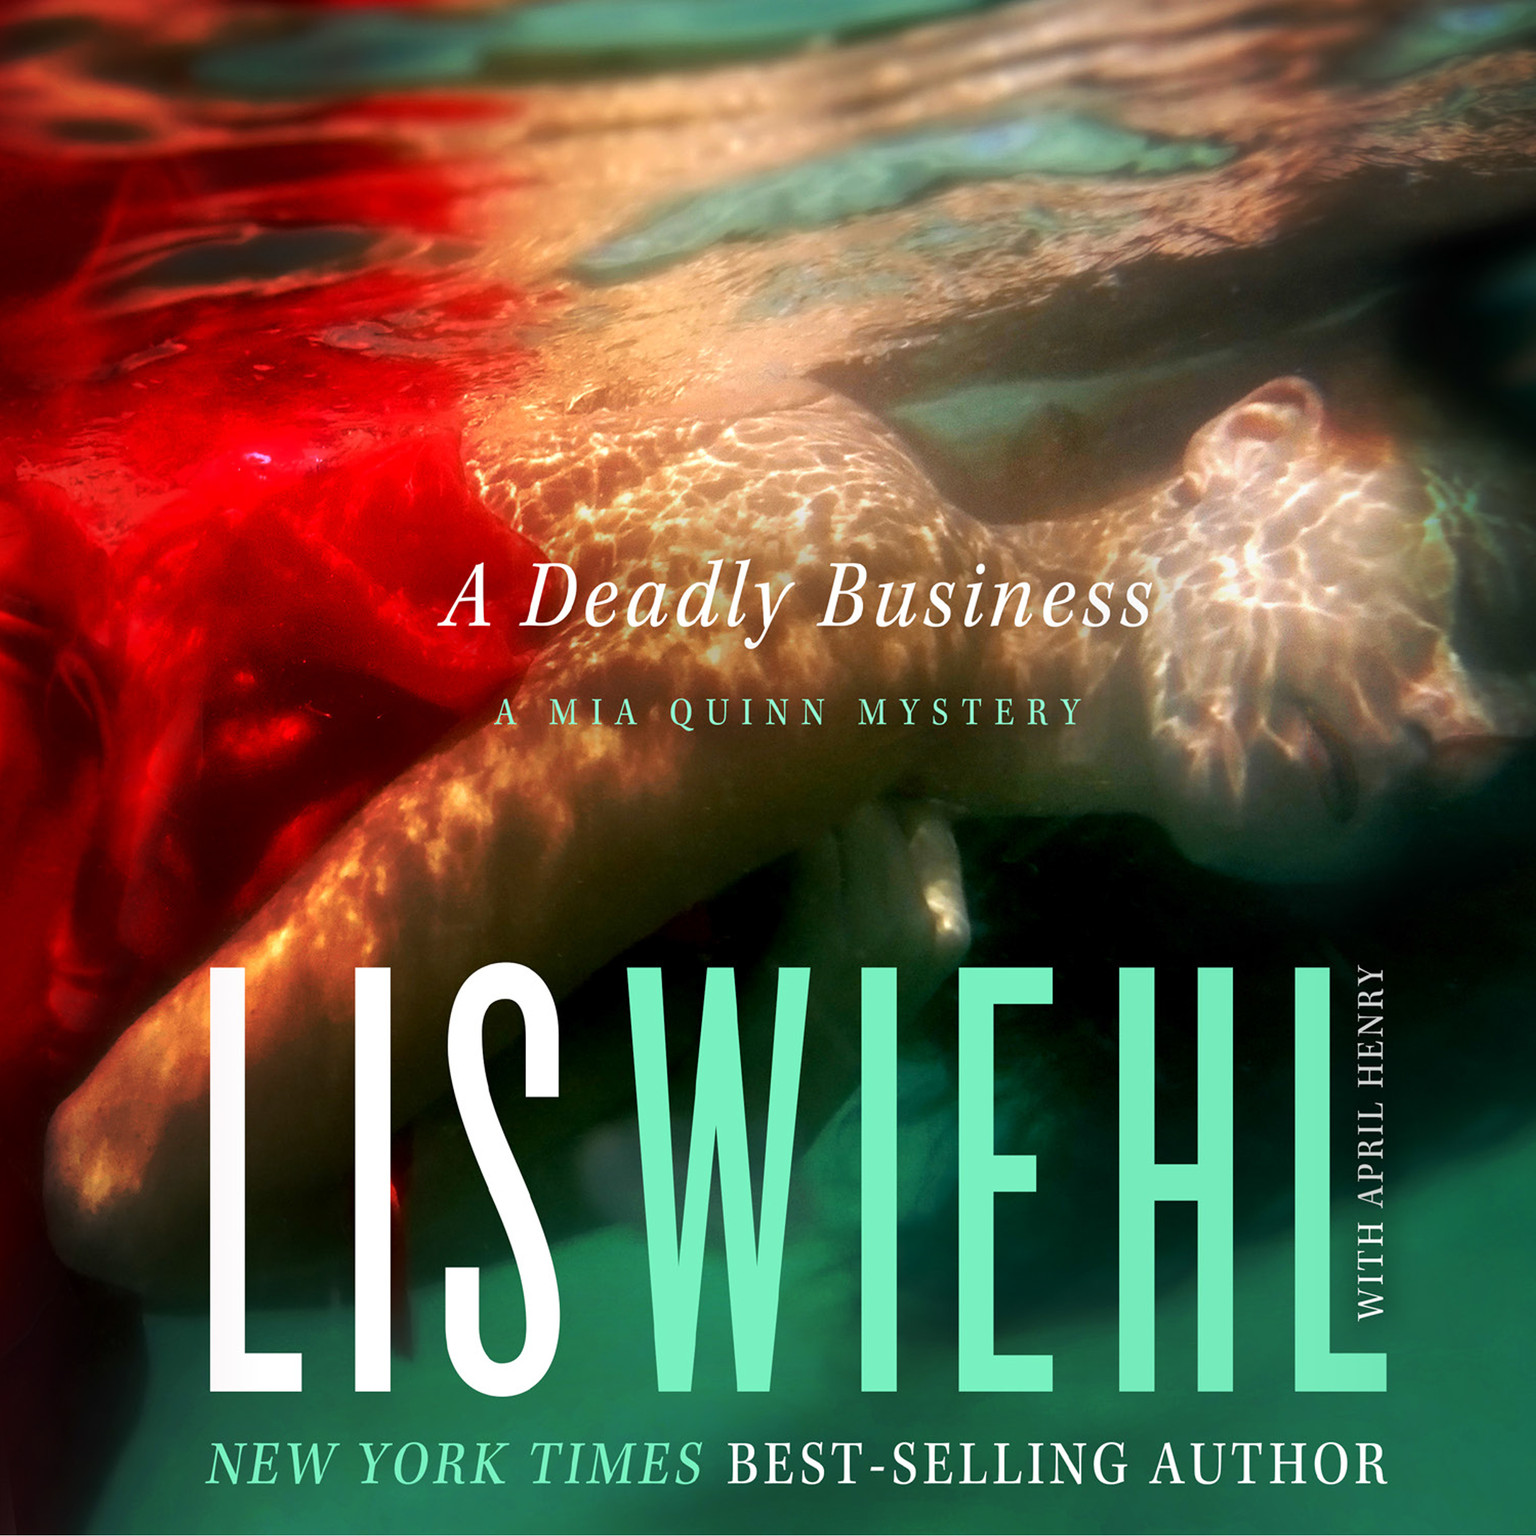 Printable A Deadly Business: A Mia Quinn Mystery Audiobook Cover Art